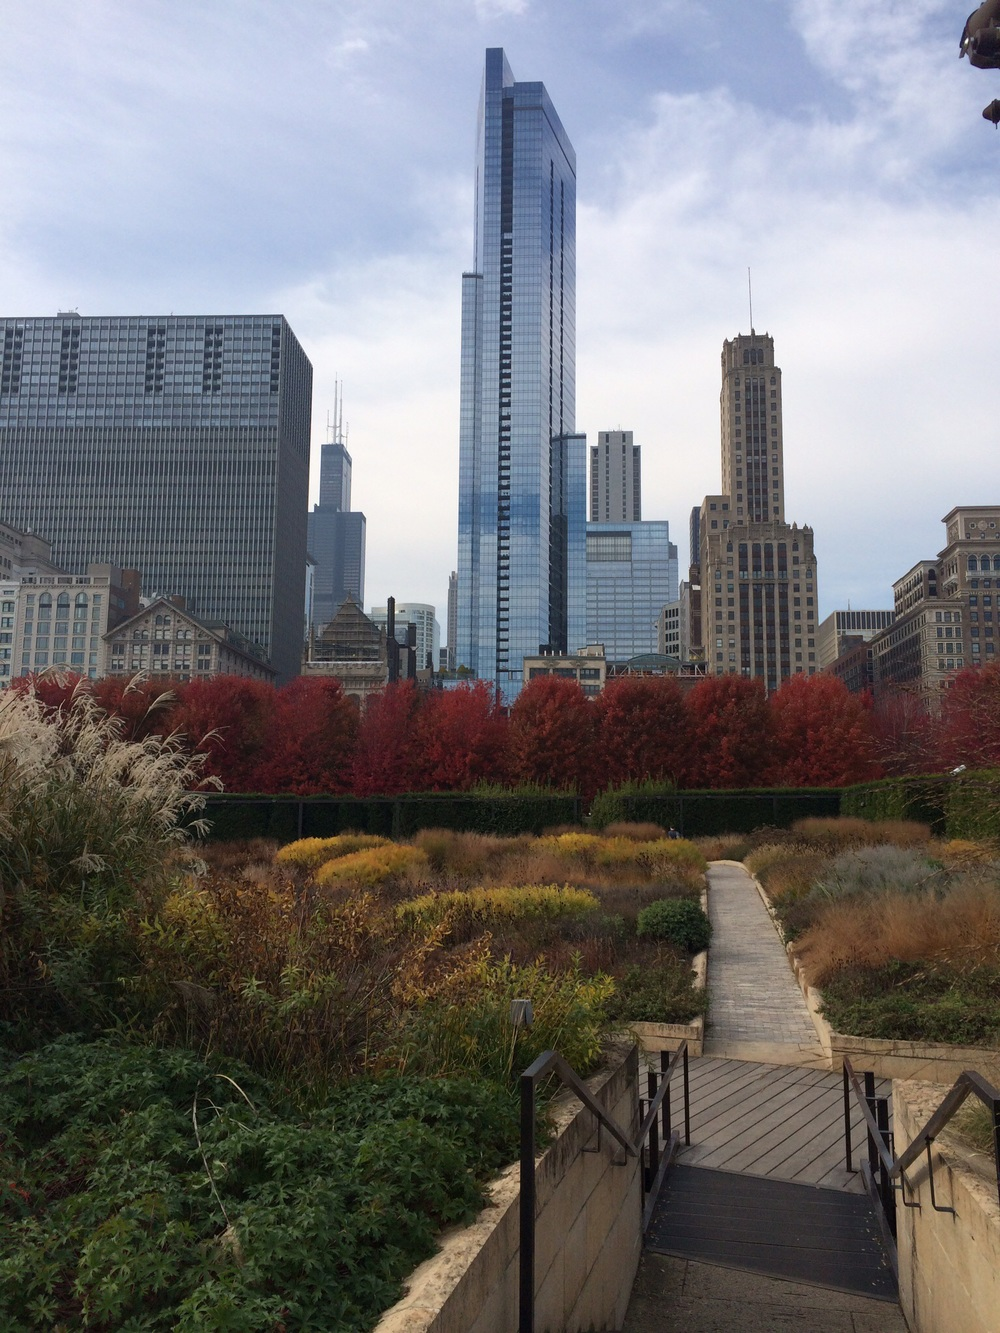 The skyline with the Lurie Garden at Millenium Park in the foreground.